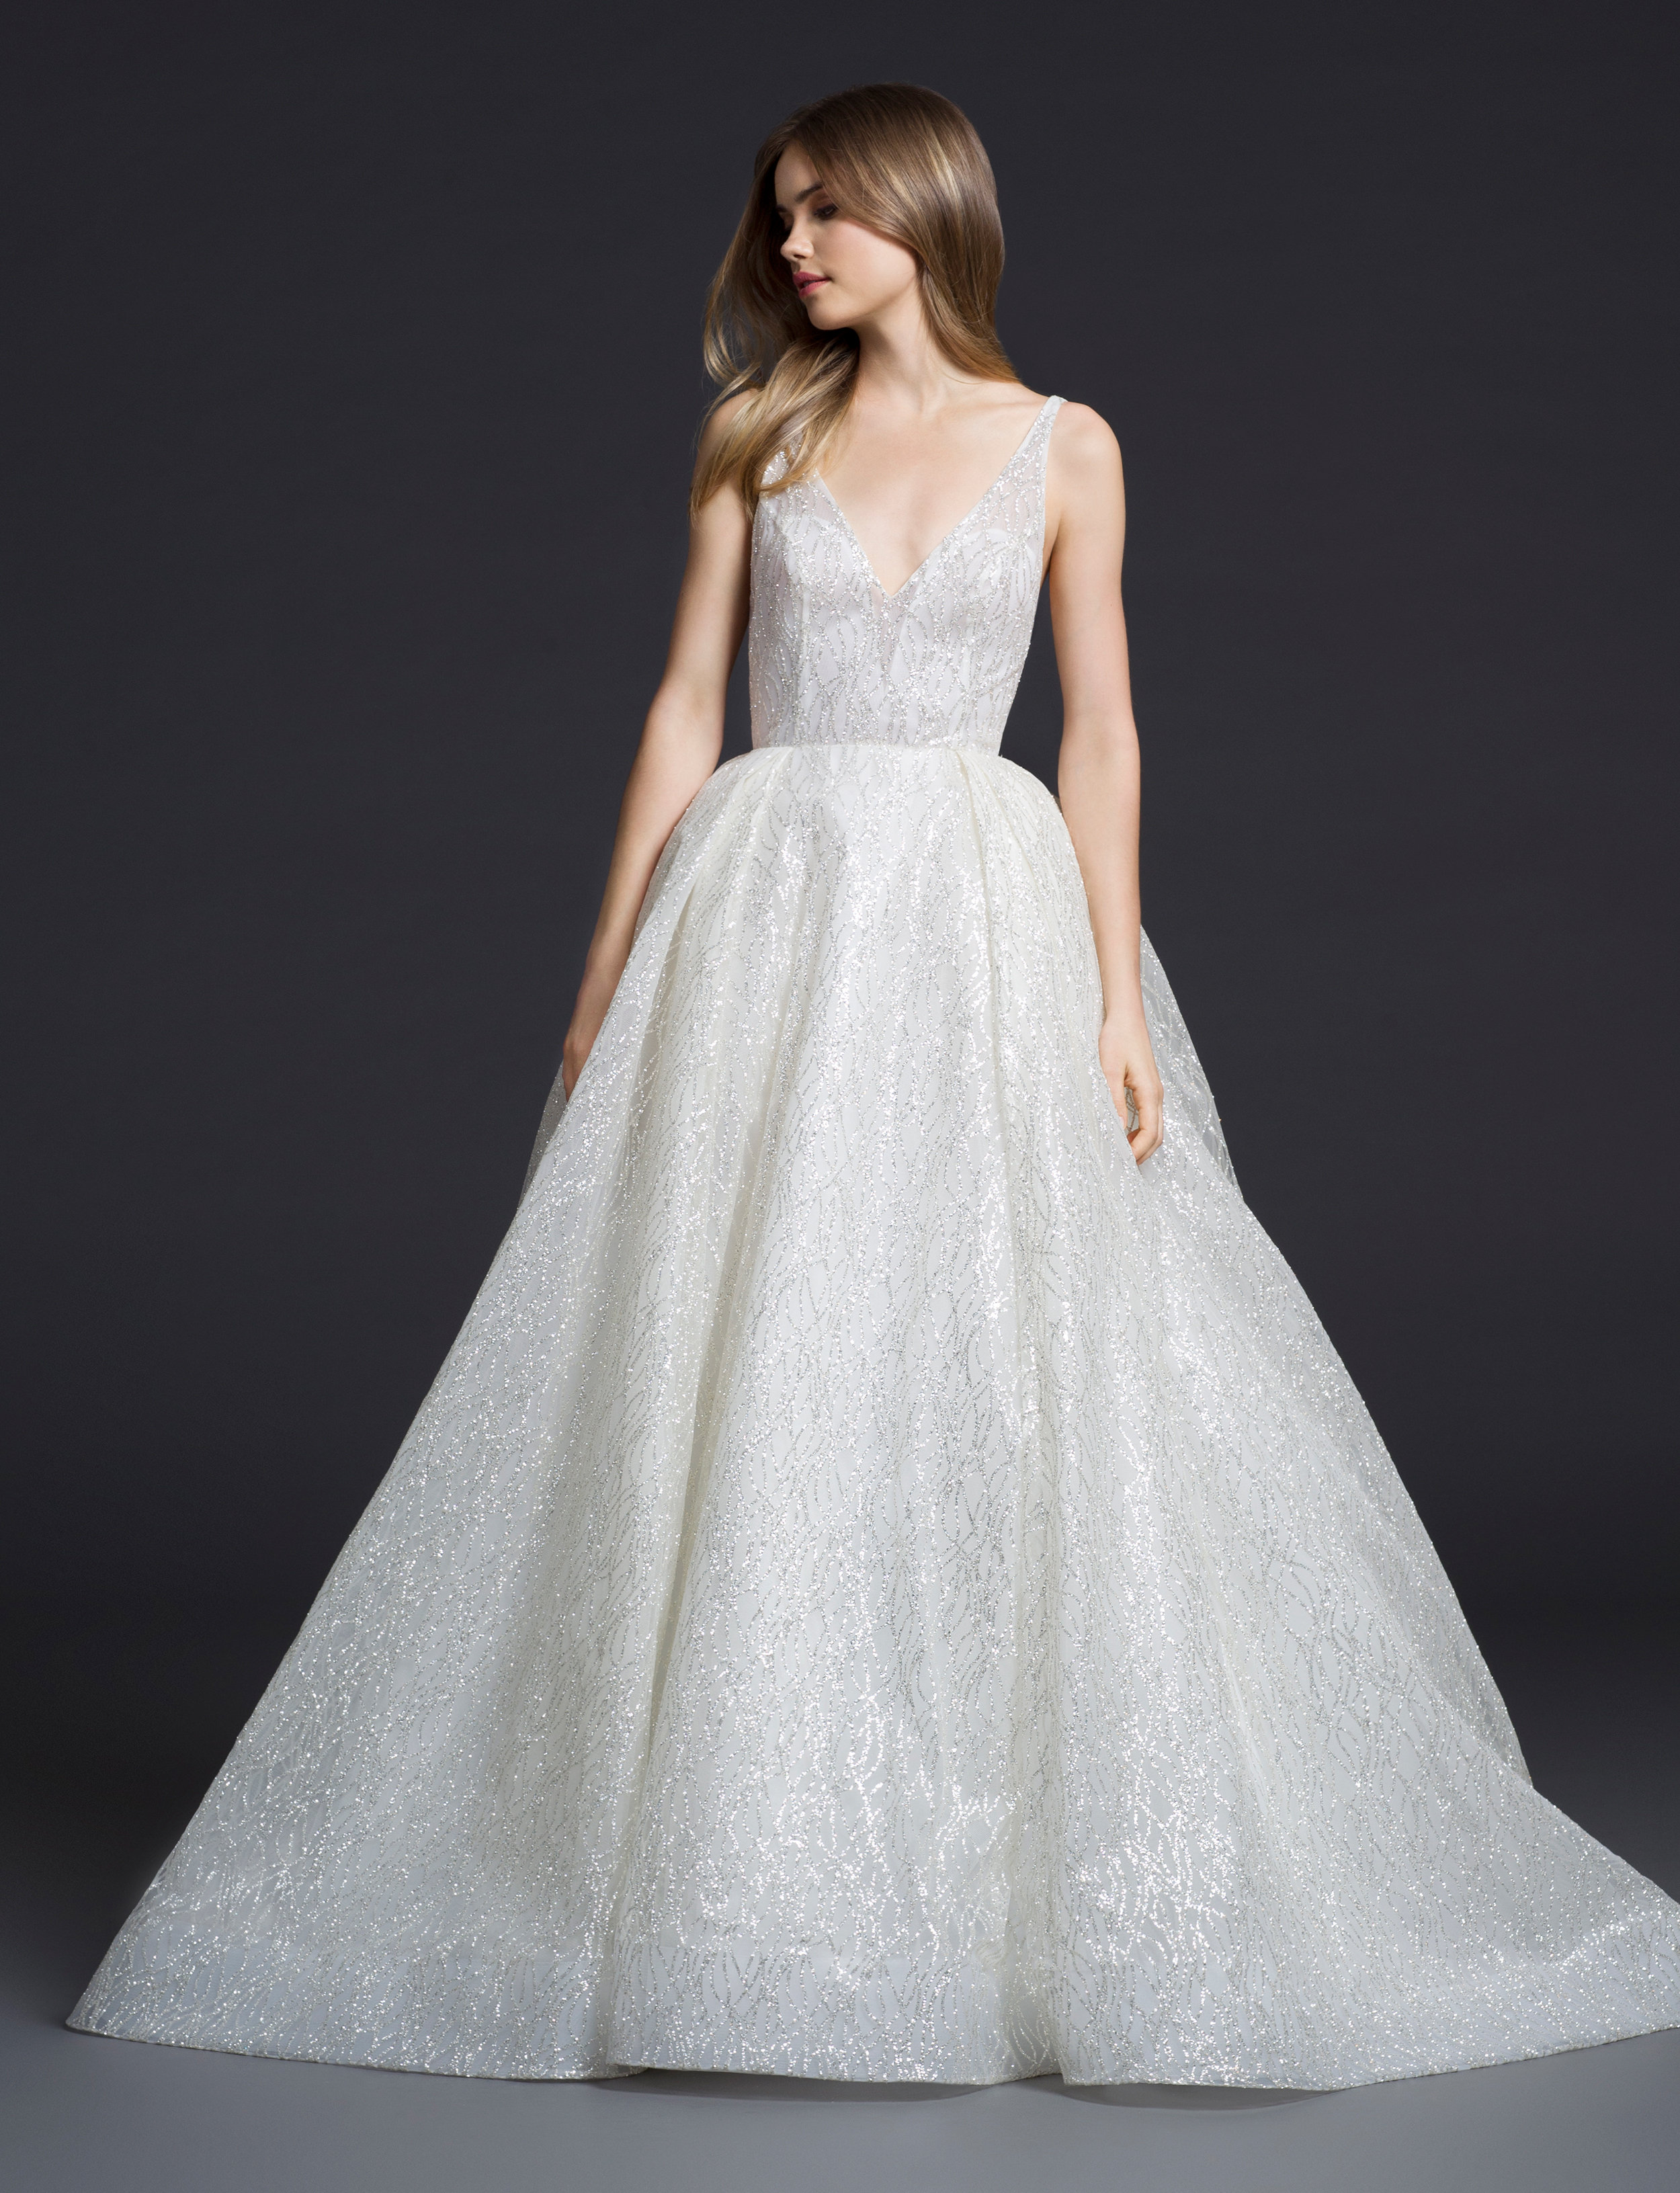 3 6 6 2    :  If you're looking for the perfect real-world Cinderella gown, look no further. The classic V cut frames the torso beautifully, while the box-pleat skirt are sure to make your ballgown dreams come true.